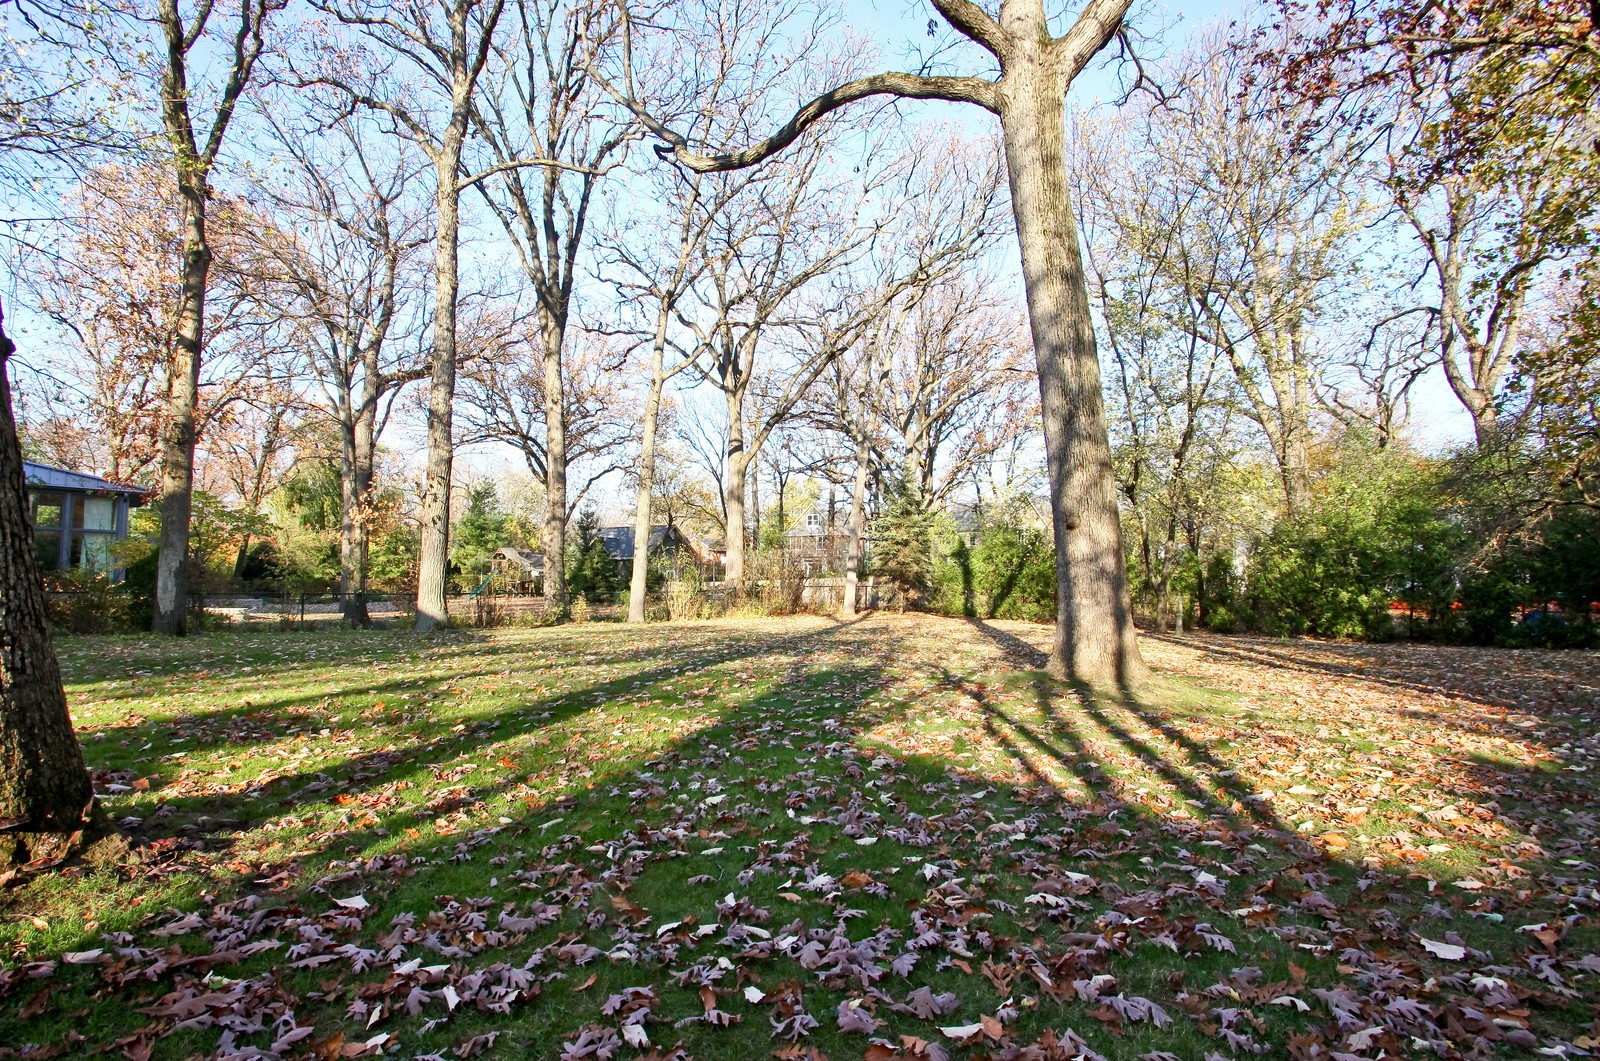 Real Estate Photography - 231 Woodlawn Ave, Winnetka, IL, 60093 - 231 Woodlawn Ave, Glencoe view of the yard from th